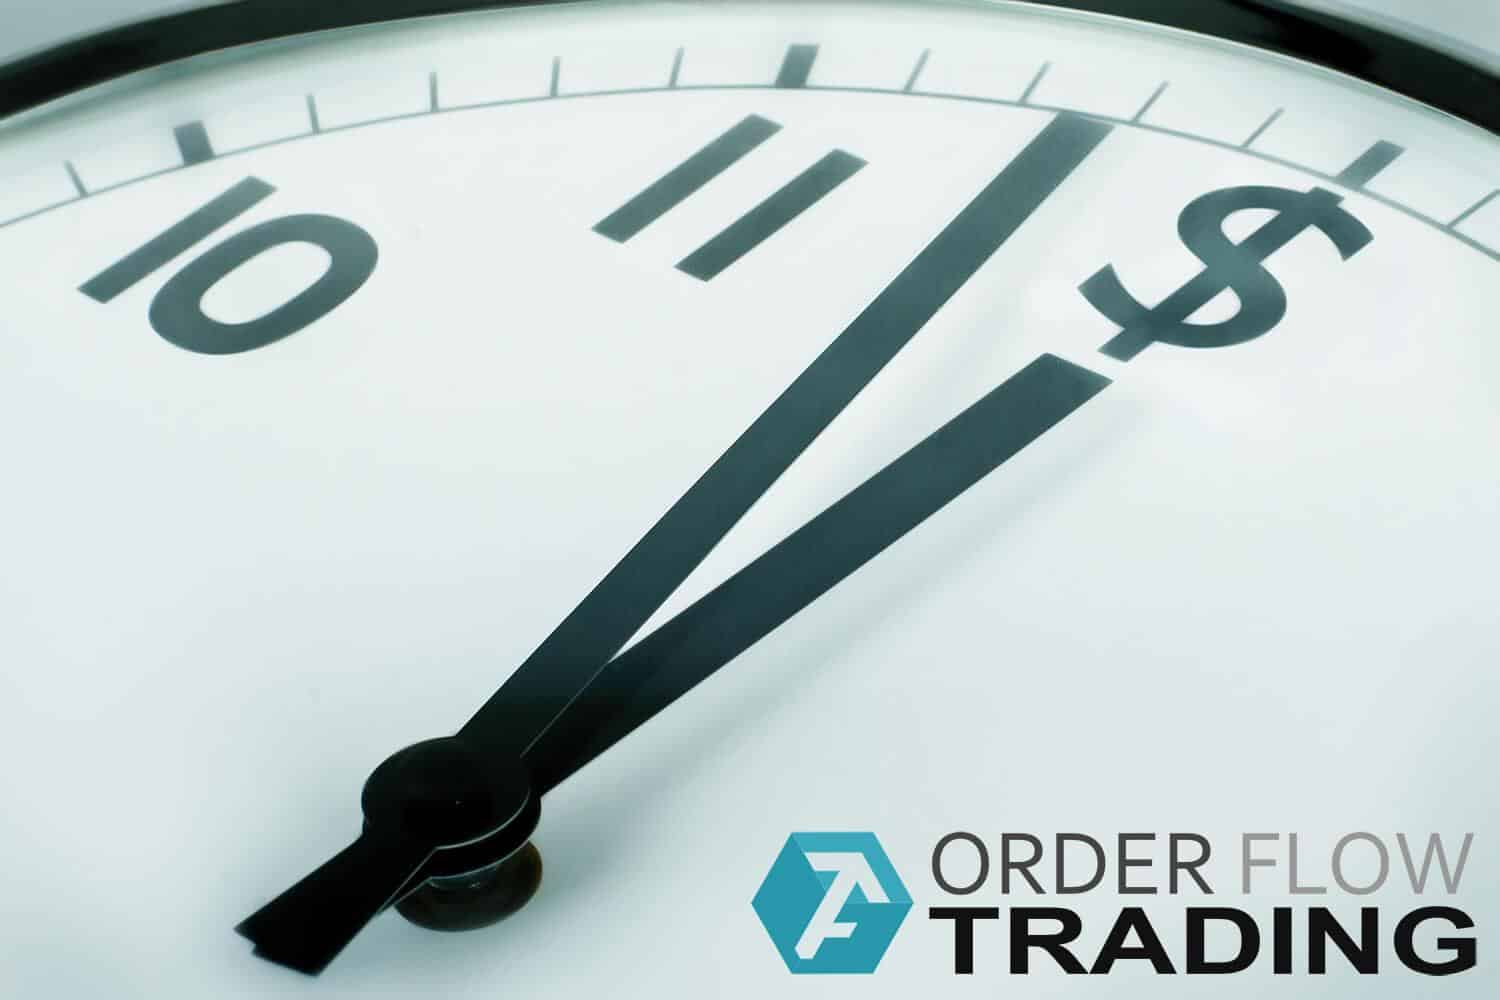 Three worst periods of time for trading